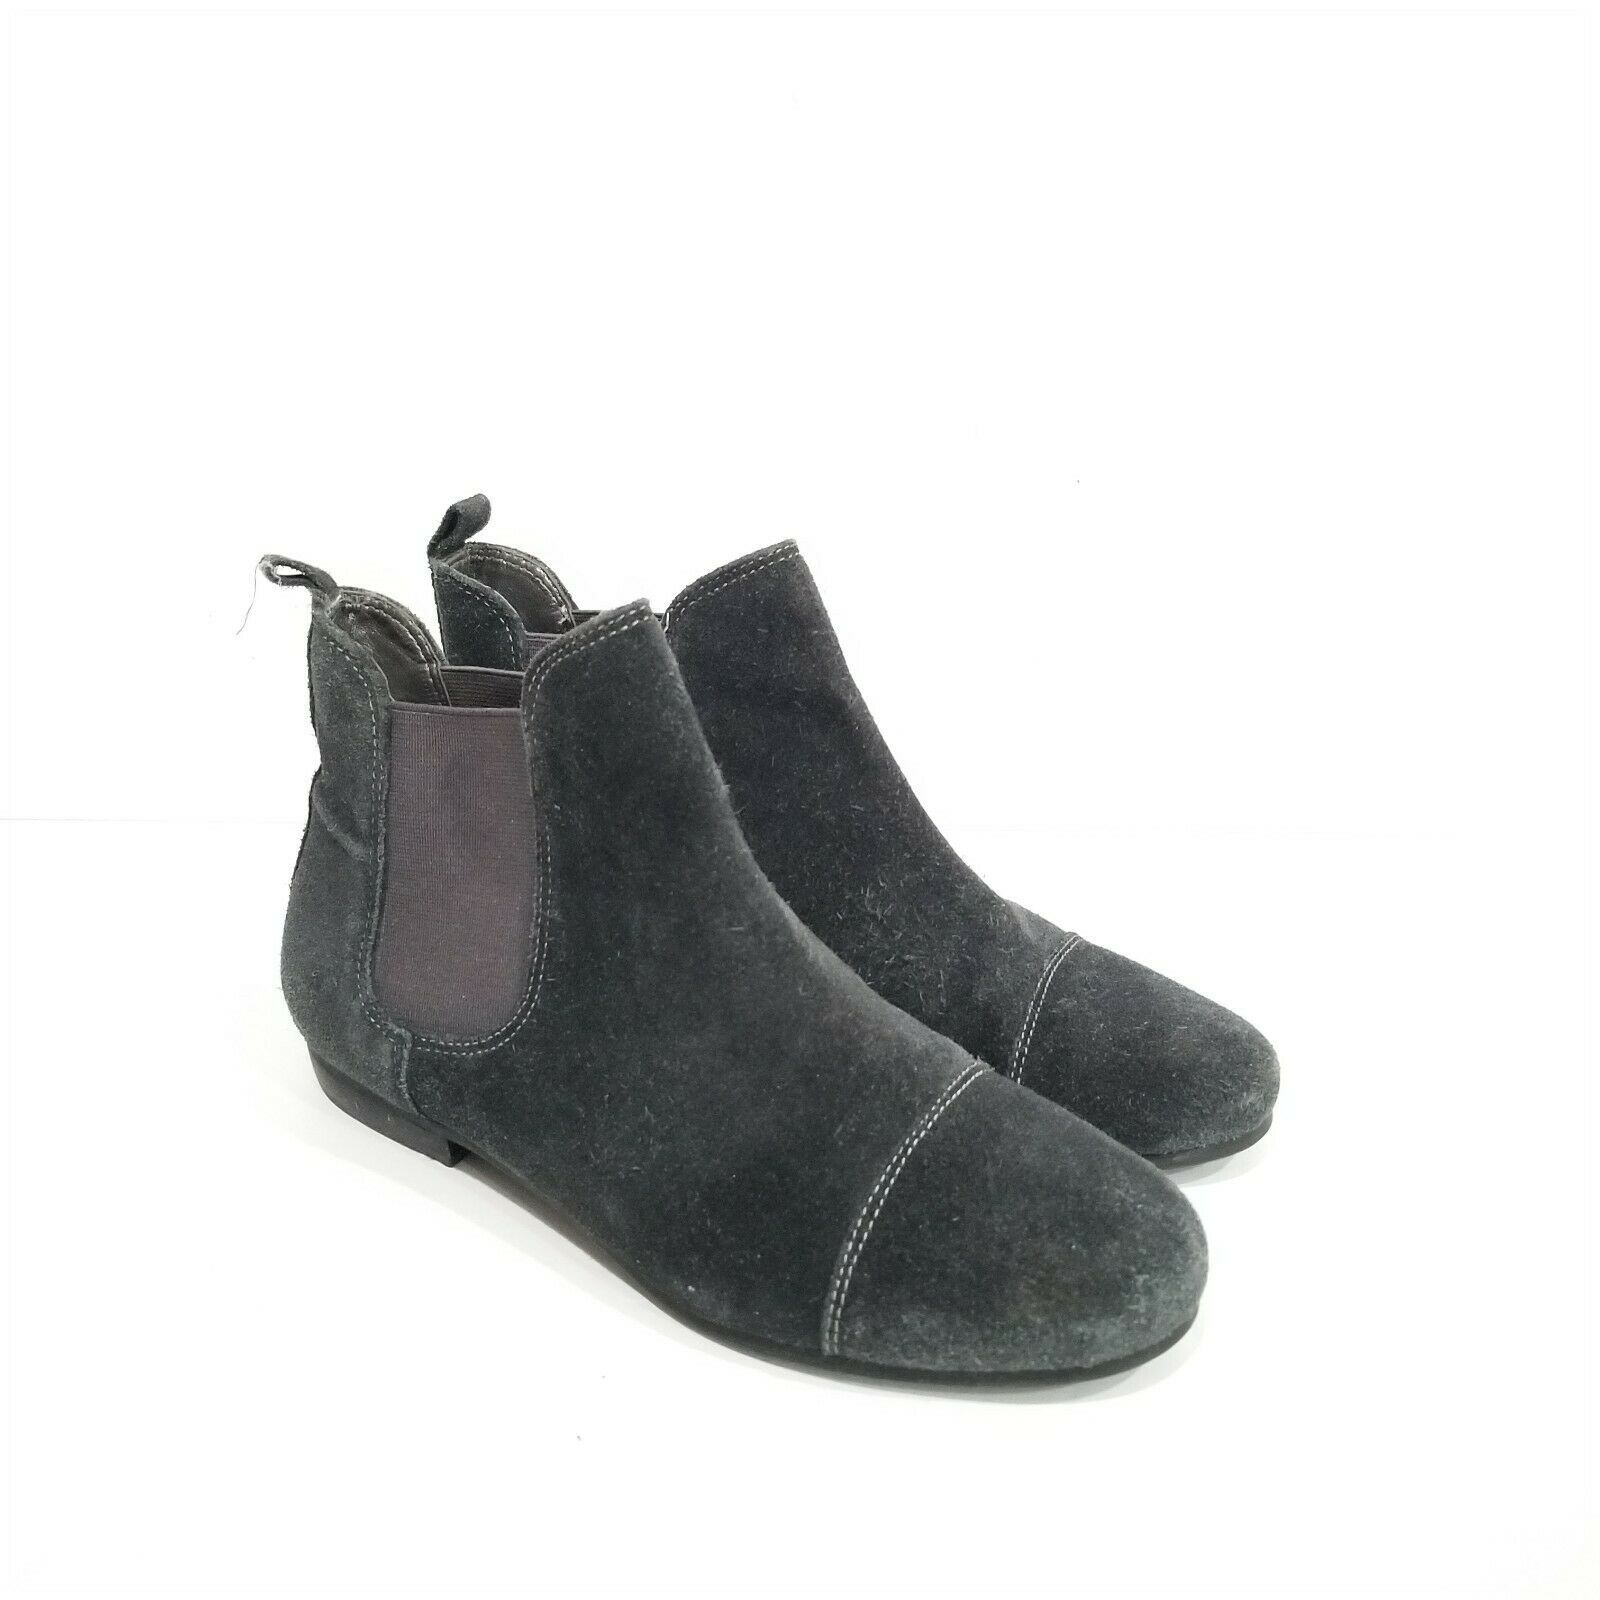 J. Crew Girls Size 4 Booties Gray Black Suede Pull-on Boots - $17.64